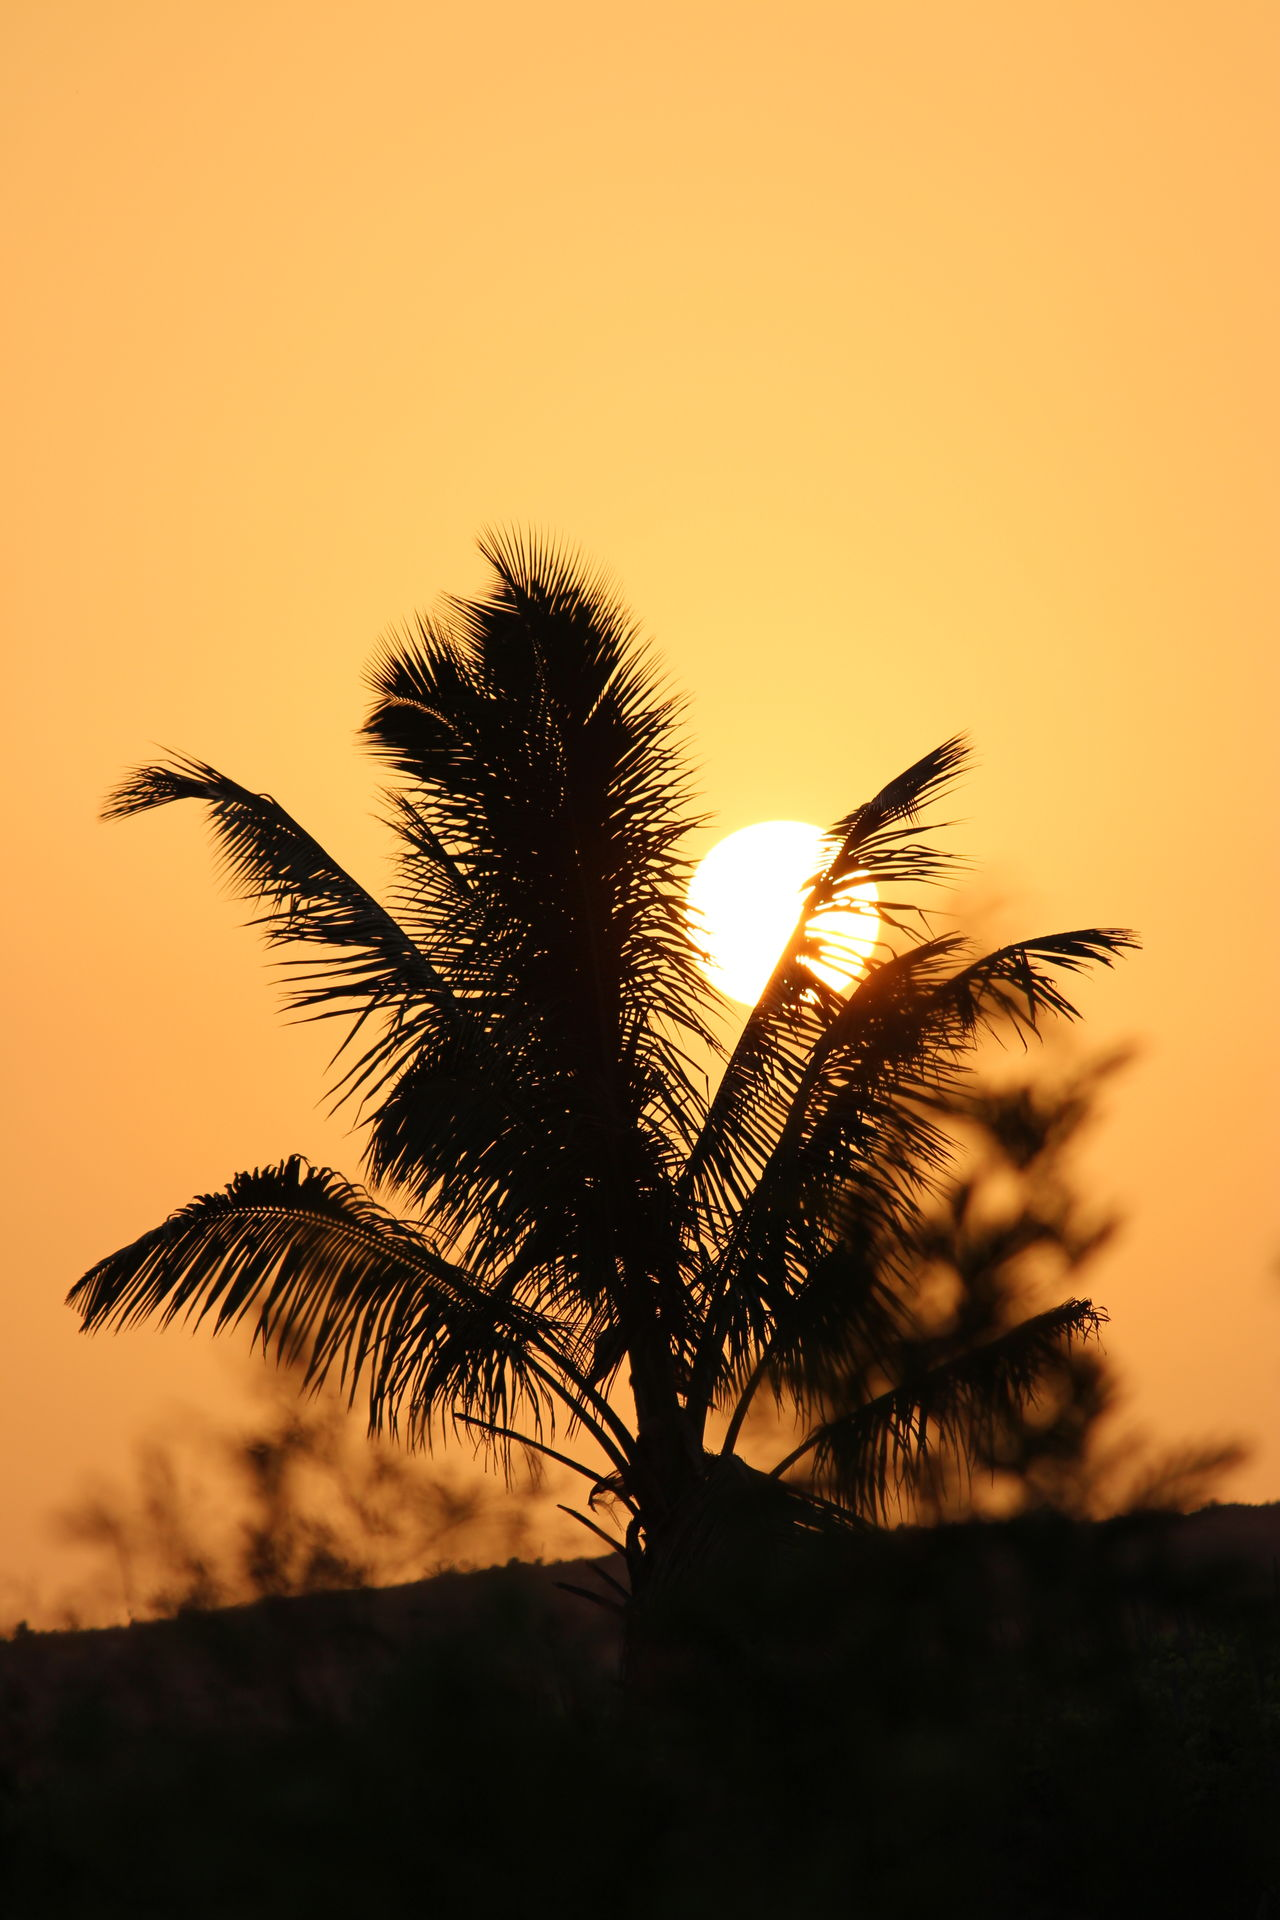 Sunset Silhouette Nature Tree No People Plant Outdoors Growth Beauty In Nature Uncultivated Sky Low Angle View Palm Tree Rural Scene Plant Part Close-up Day Flower Head First Eyeem Photo Break The Mold EyeEmNewHere The Photojournalist - 2017 EyeEm Awards The Portraitist - 2017 EyeEm Awards The Great Outdoors - 2017 EyeEm Awards The Street Photographer - 2017 EyeEm Awards The Architect - 2017 EyeEm Awards